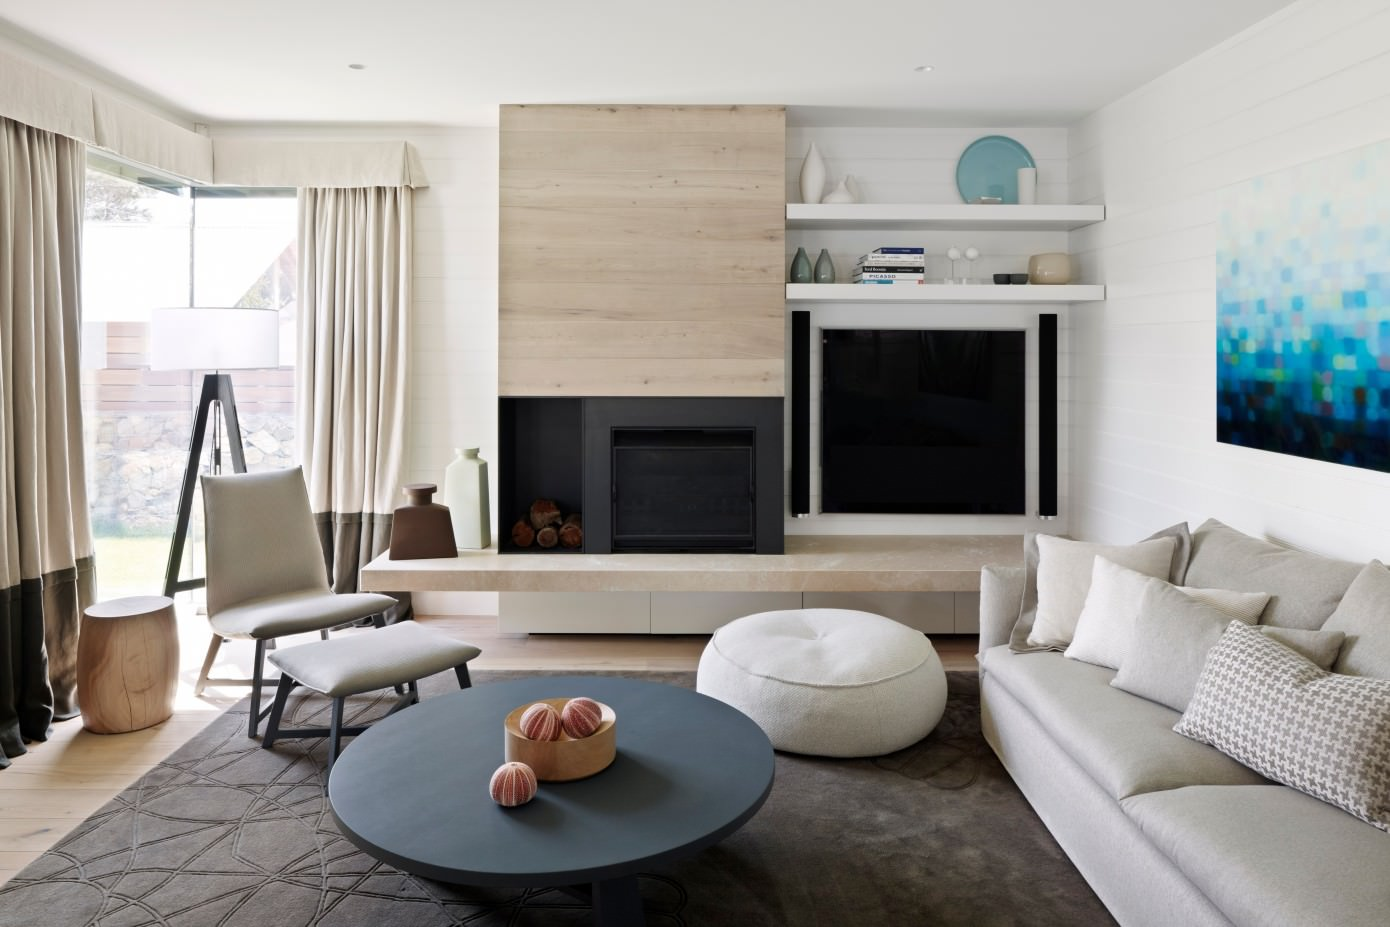 Yes Badezimmer Barwon Heads By Pleysier Perkins Homeadore